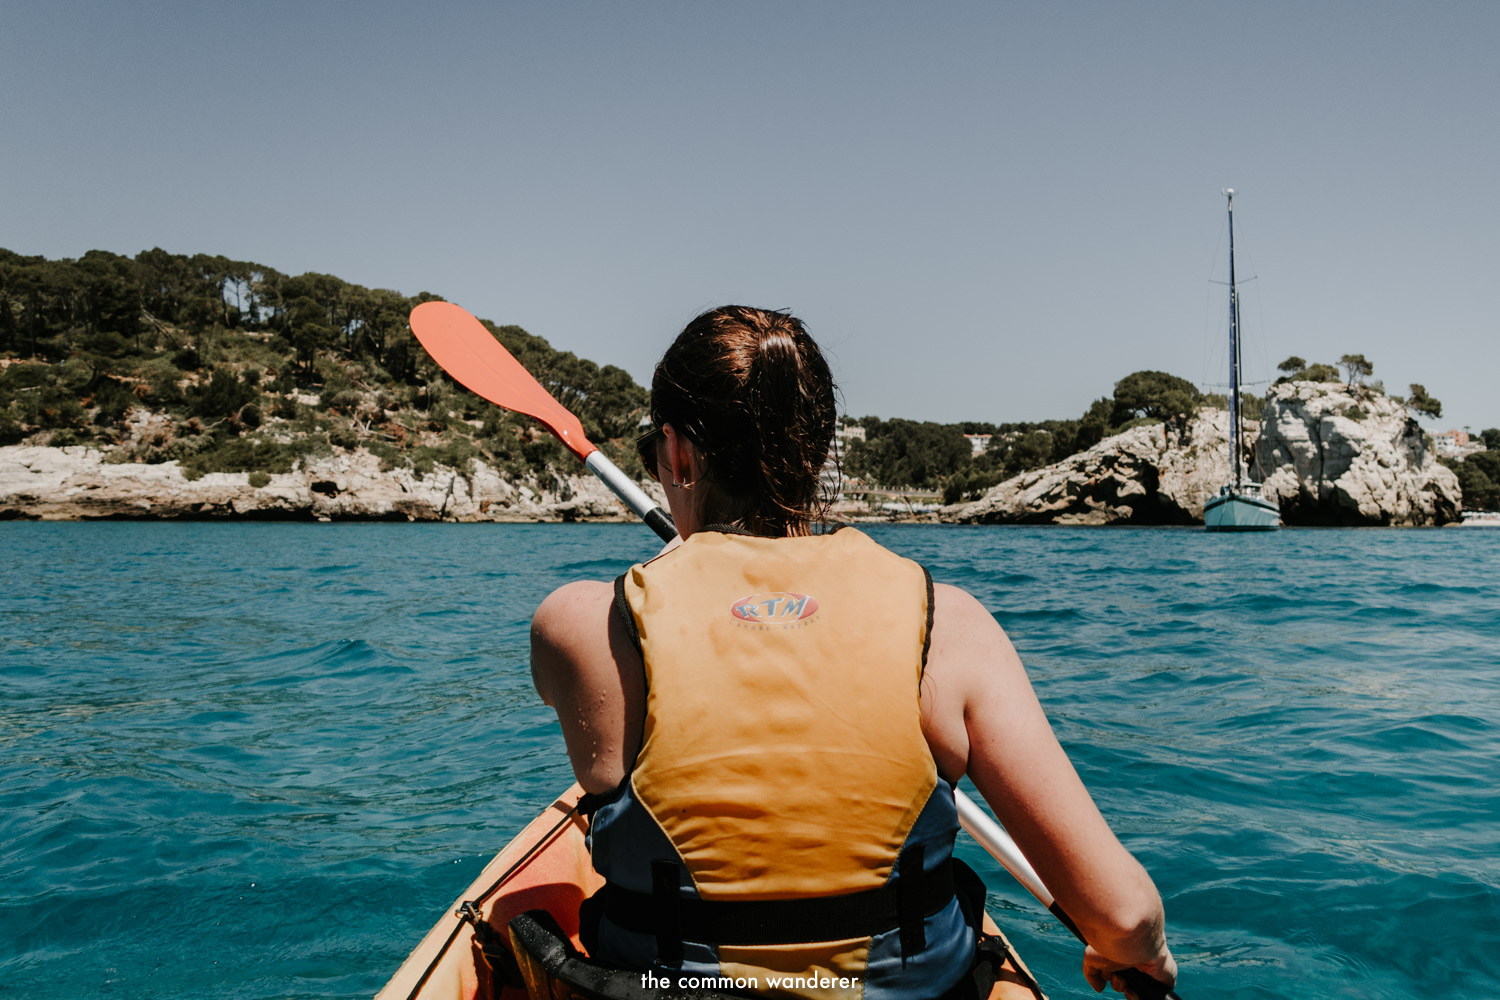 Kayaking through the turquoise waters of Menorca, Spain